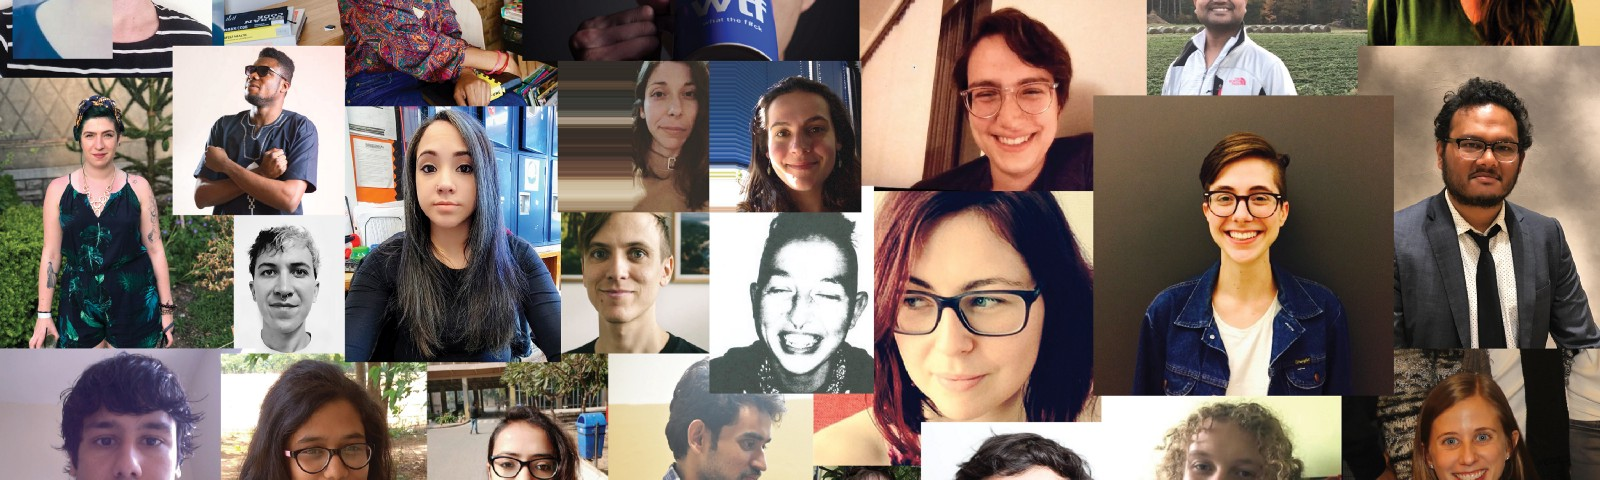 A collage of all the Fellows' bio photos. 42 total people.